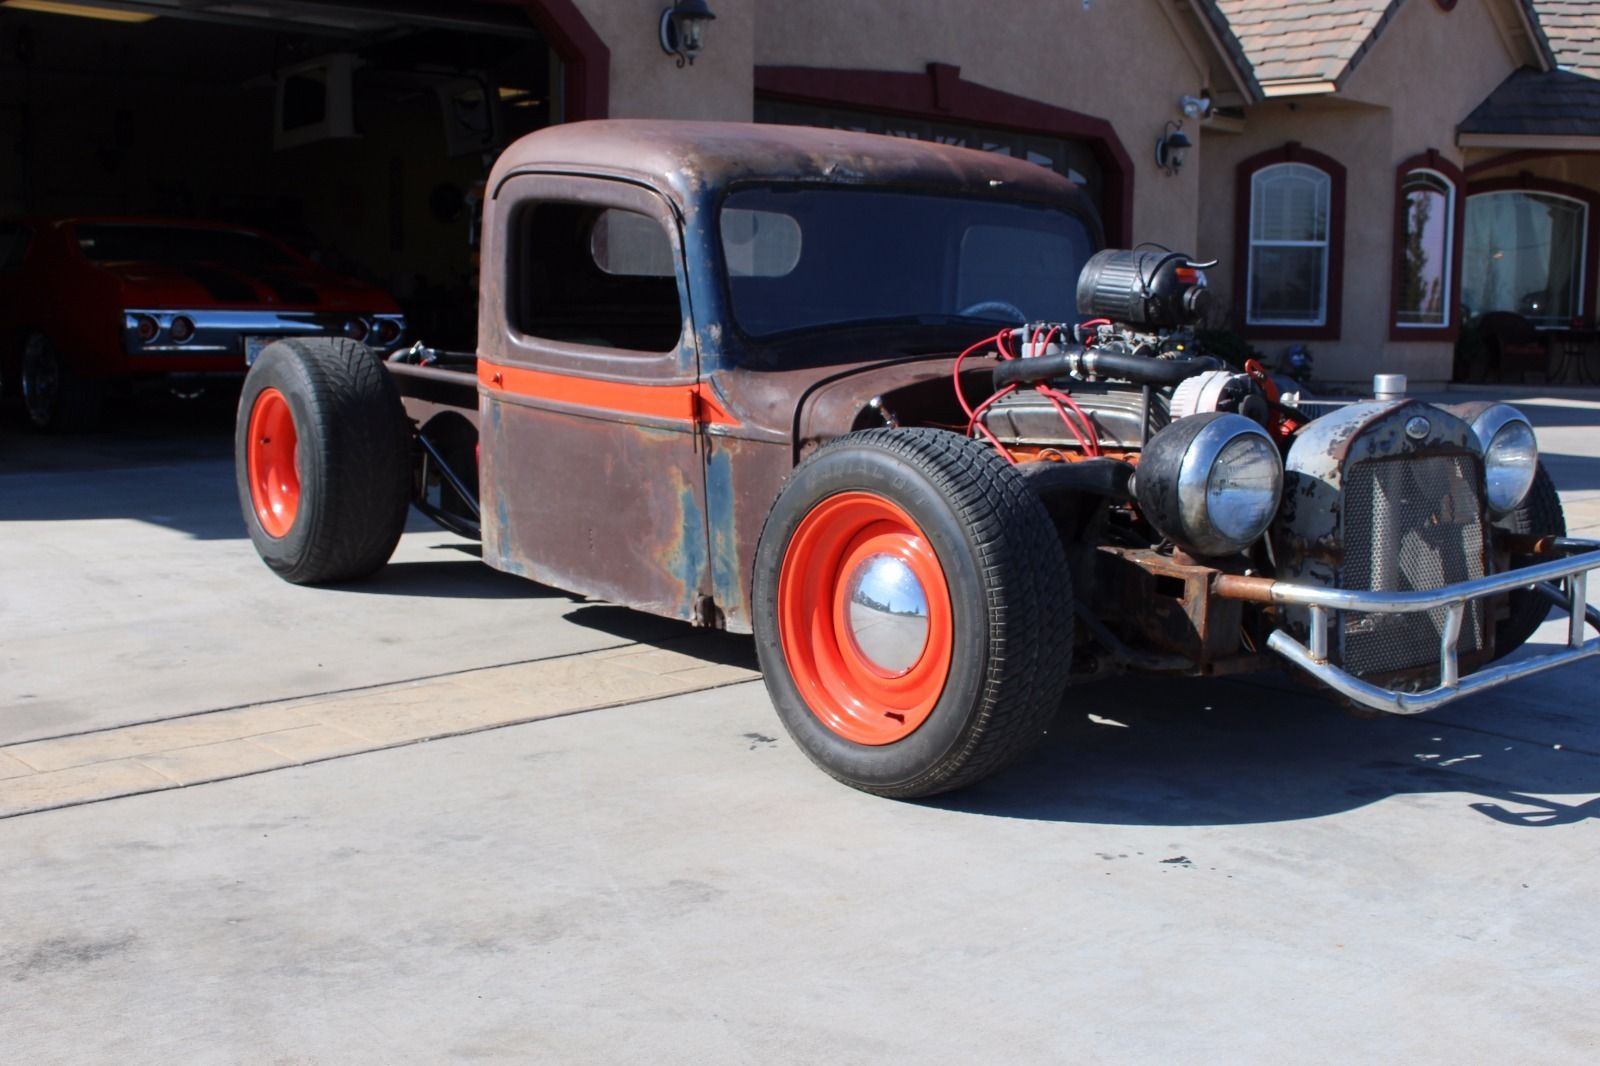 Ford Pickups Ratrod Hot Rod Custom Trucks For Sale on Custom Lifted Ford F 250